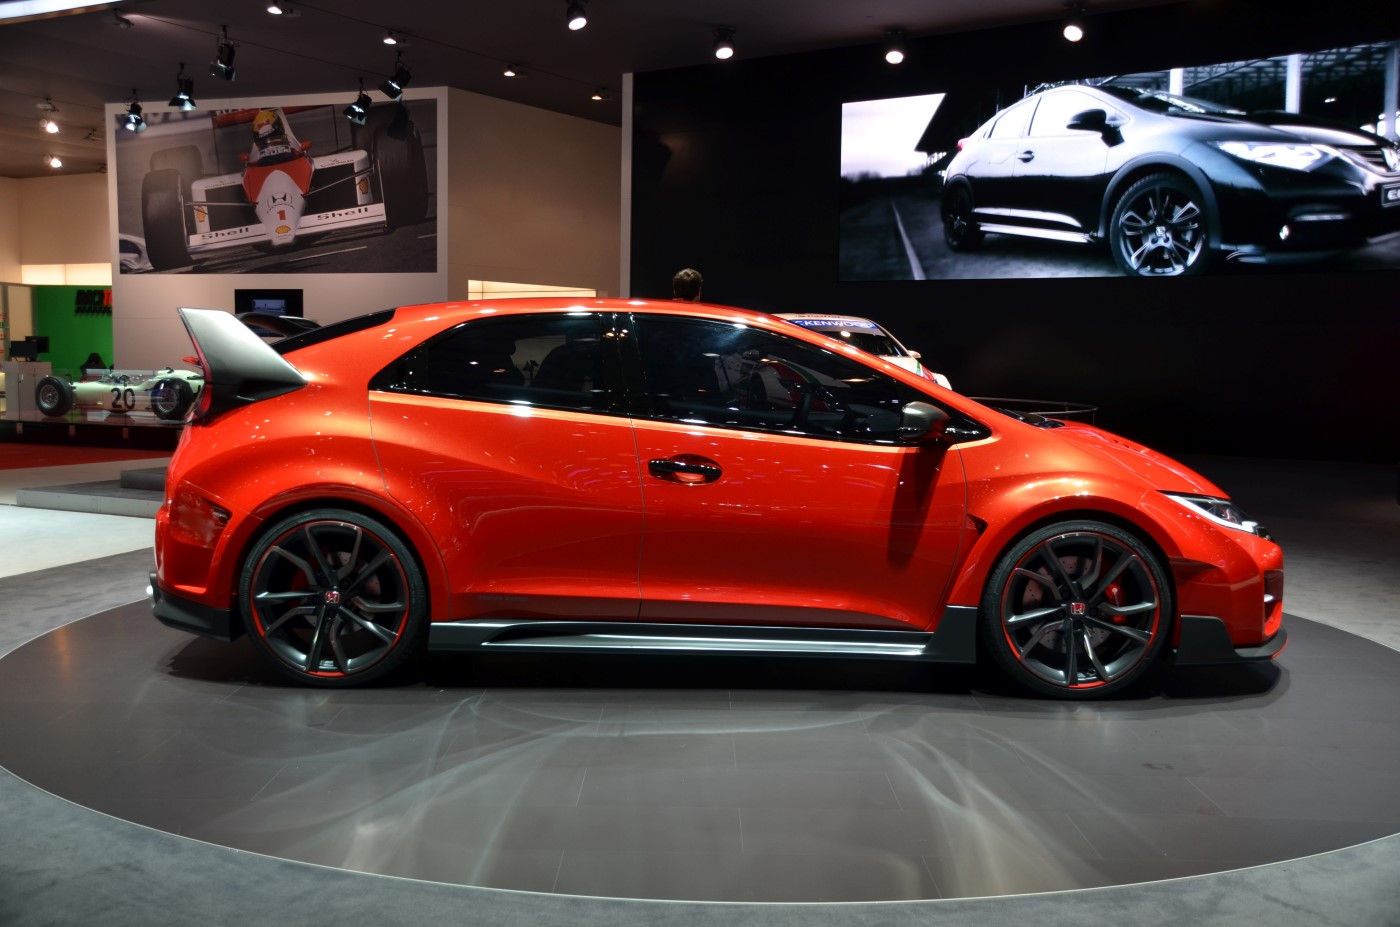 2015 honda civic type r concept revealed in geneva live photos and video. Black Bedroom Furniture Sets. Home Design Ideas